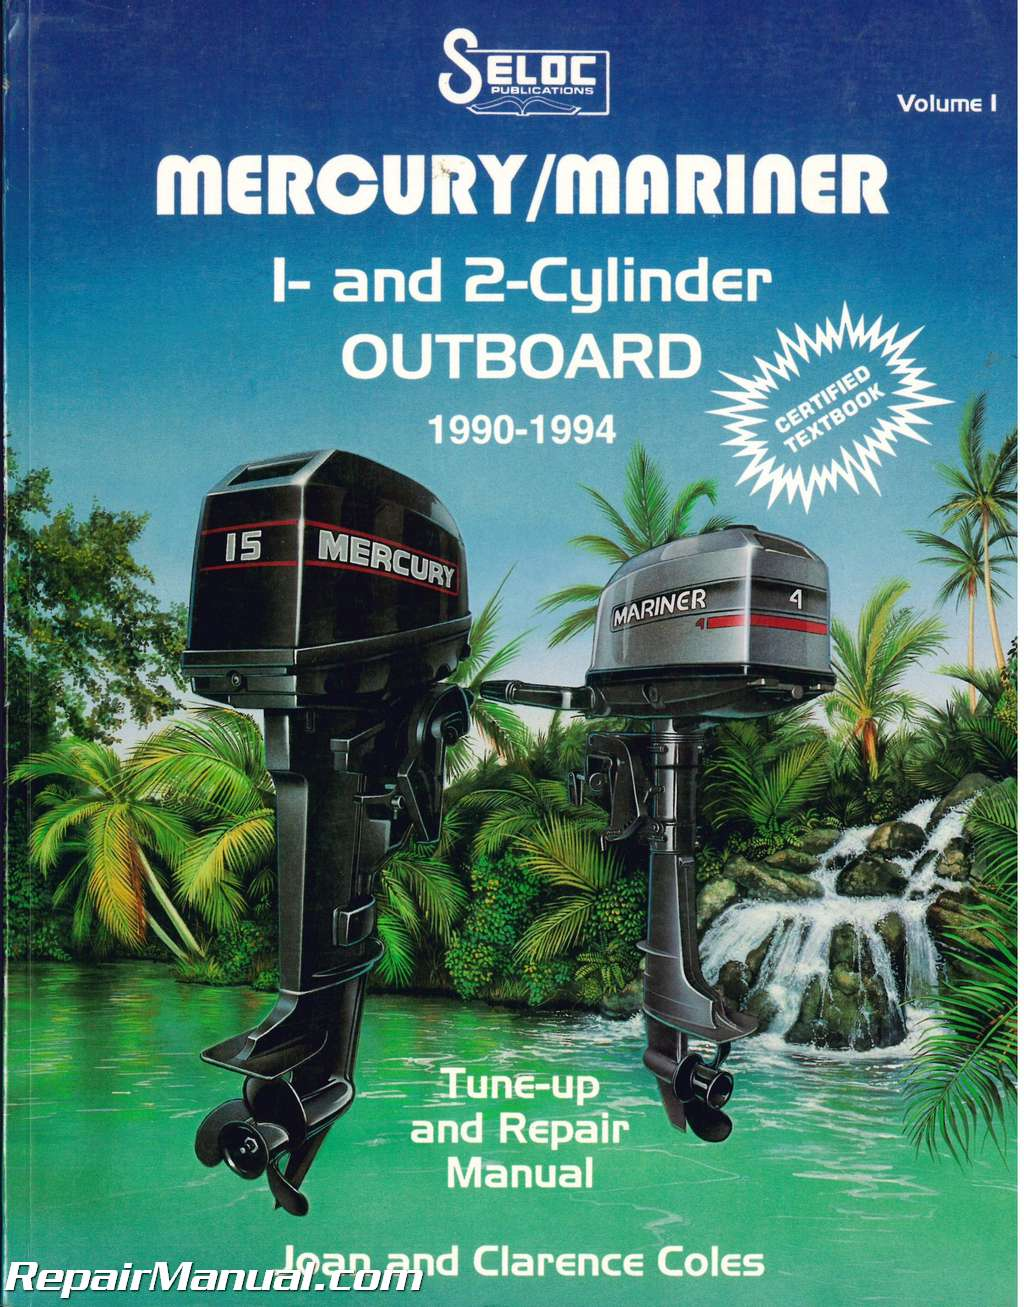 Seloc manuals seloc service and repair manuals autos post for Most reliable outboard motor 2016